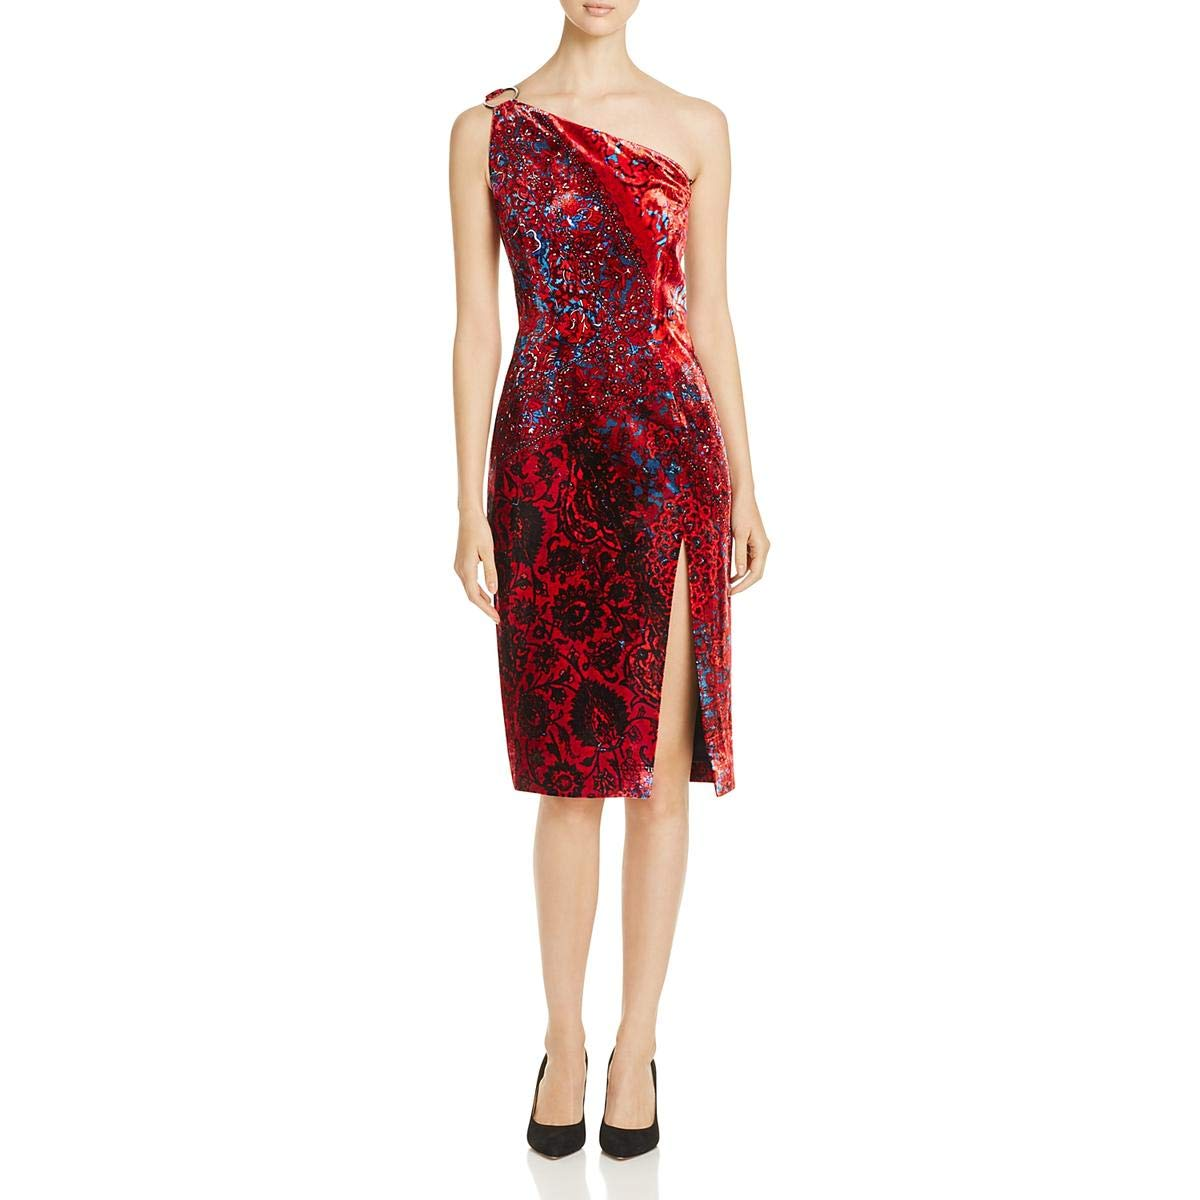 6407a2e109b Elie Tahari Womens Carter One Shoulder Knee-Length Cocktail Dress at Amazon  Women s Clothing store